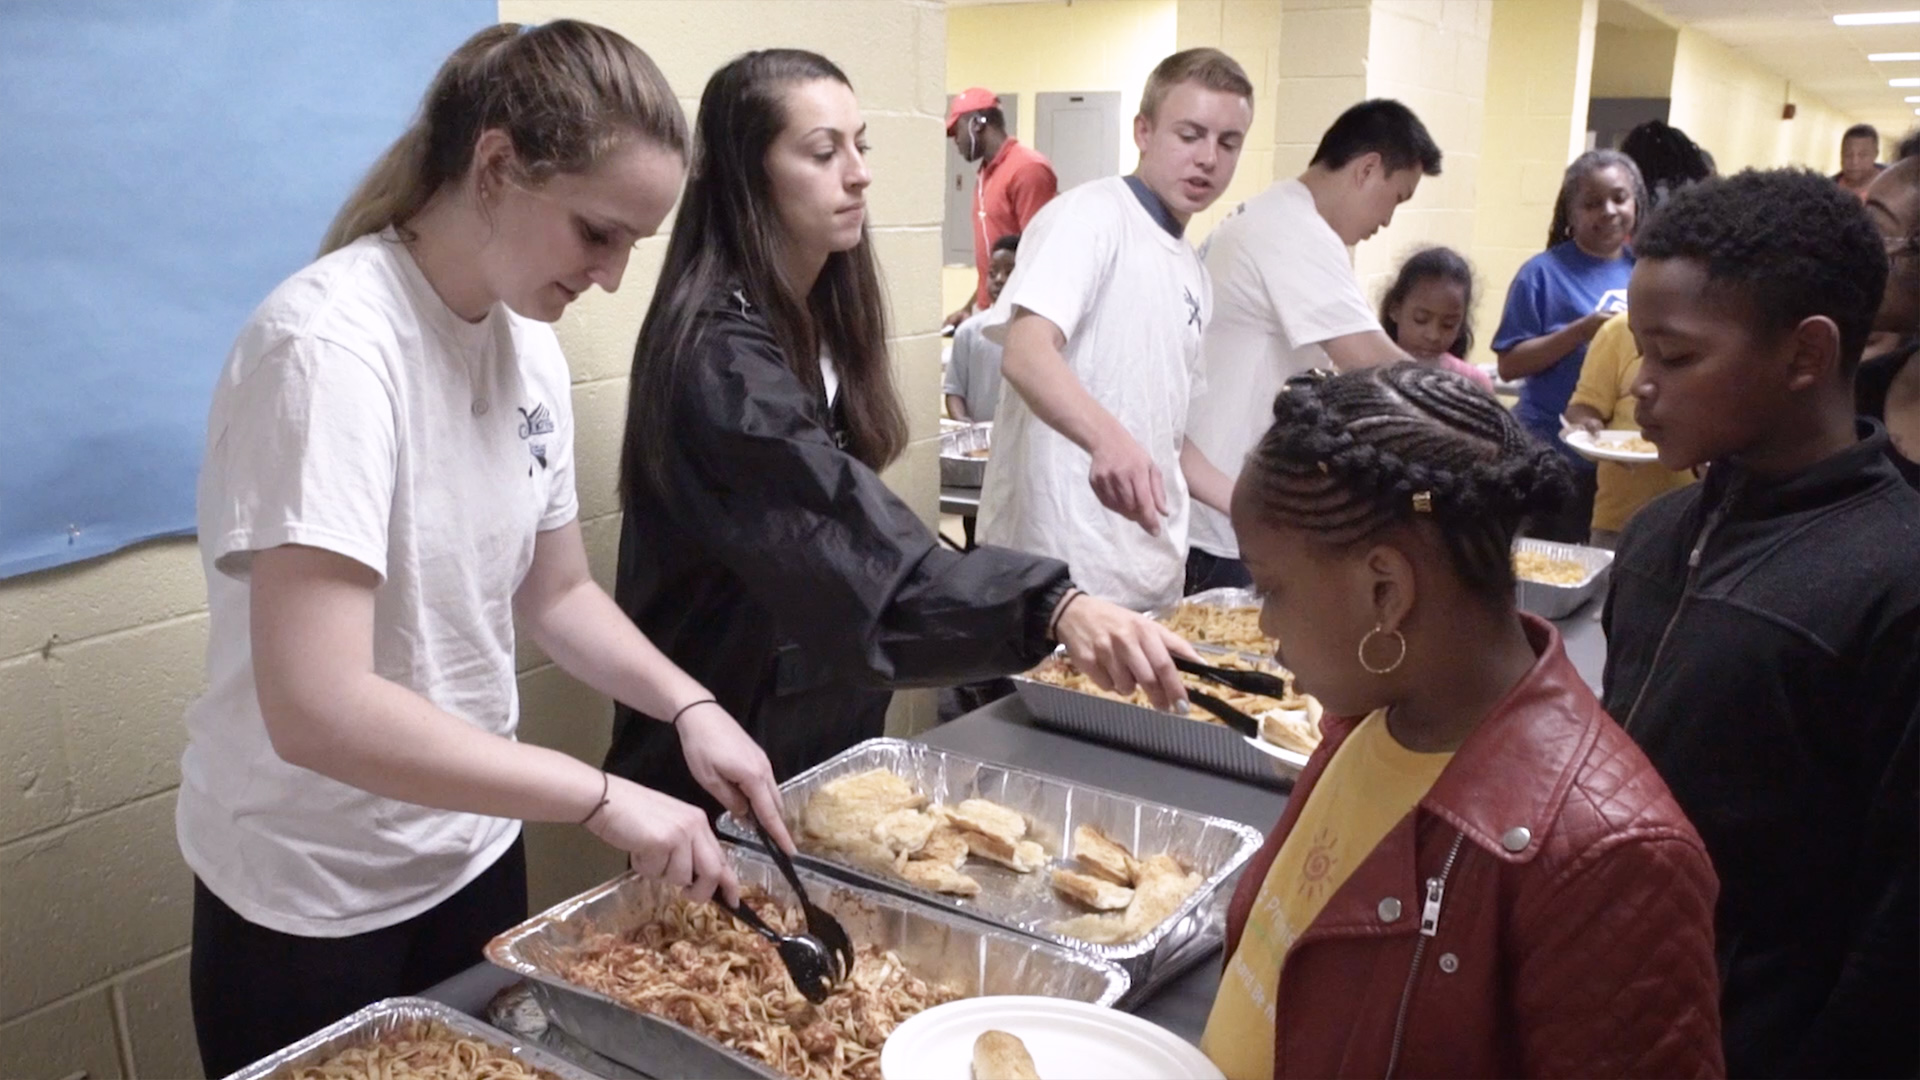 With Donations of Time and Food, UMD Students Help Those in Need